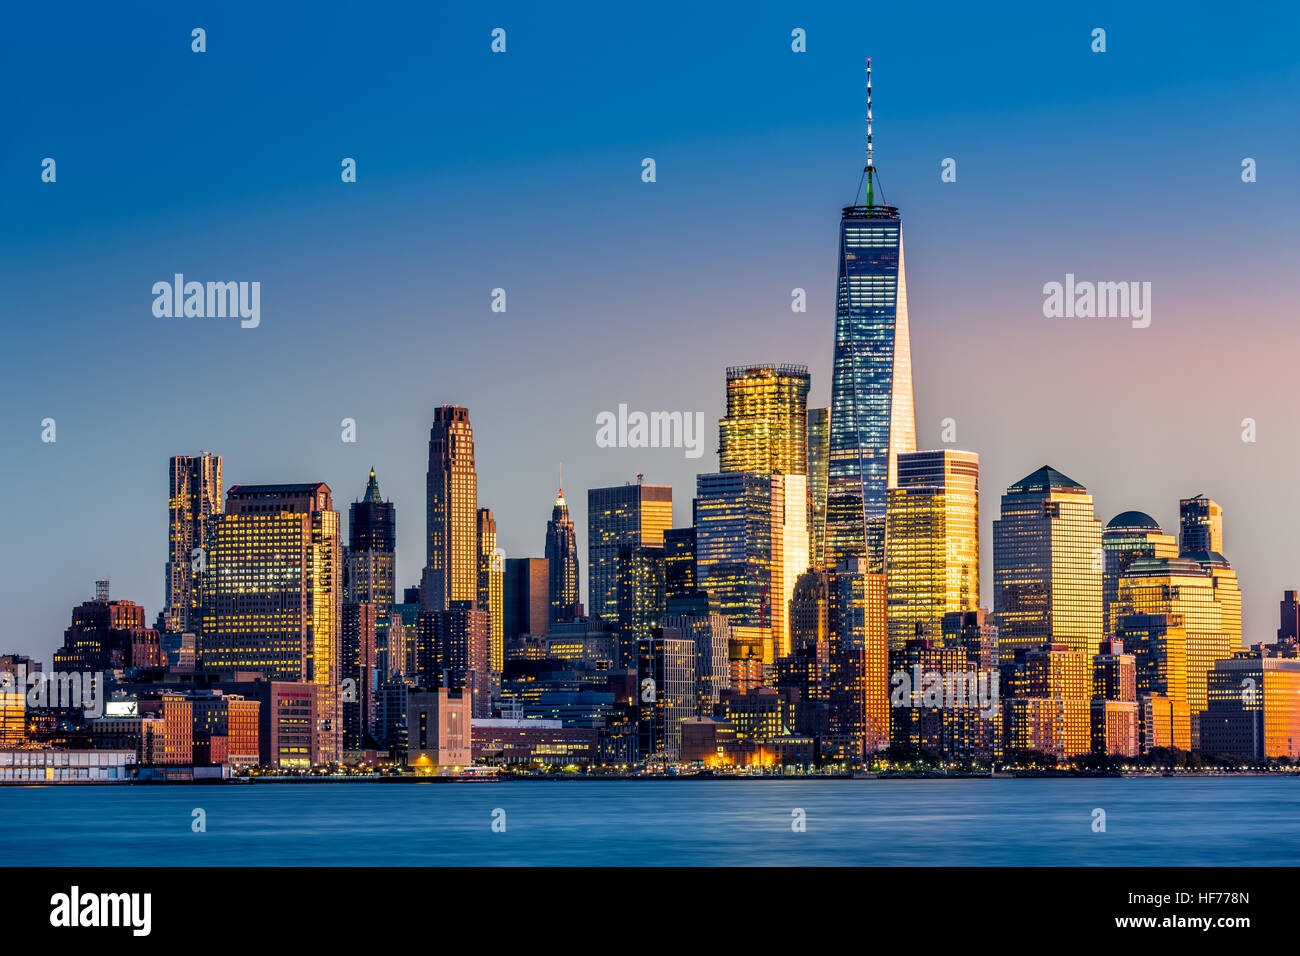 Lower Manhattan al atardecer visto desde Hoboken, New Jersey Imagen De Stock